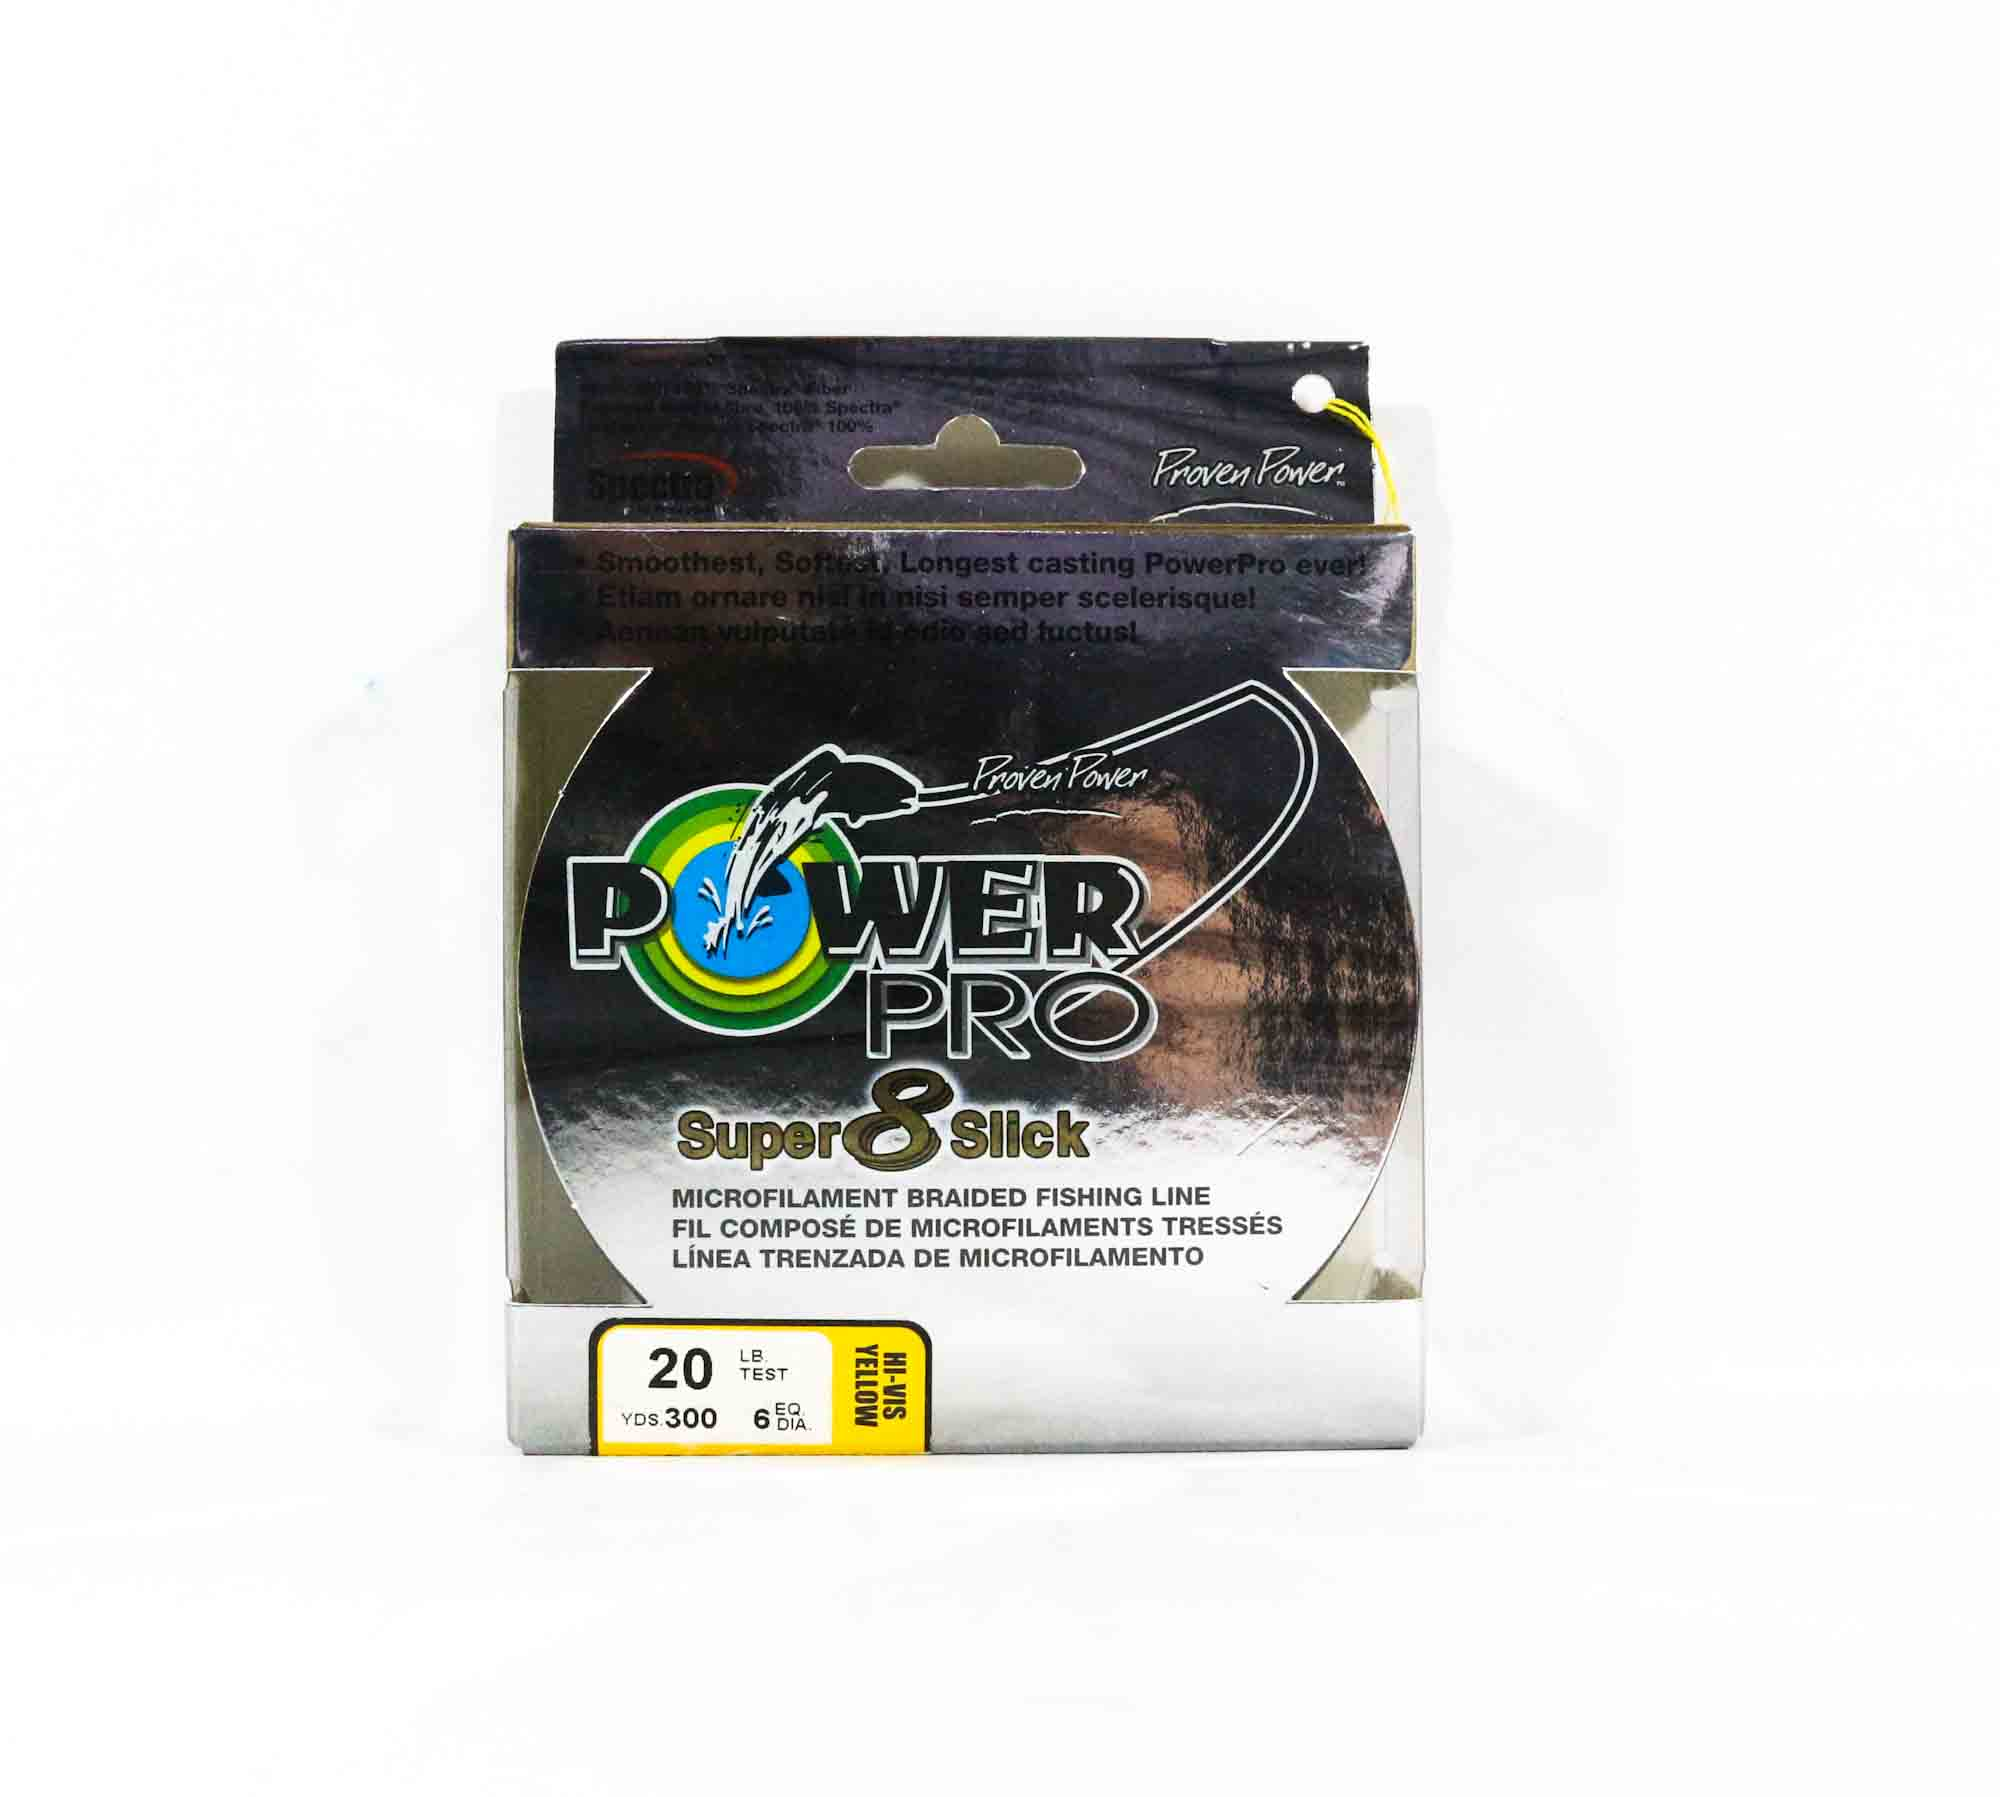 Power Pro Super 8 Slick Spectra Line 20lb by 300yds Yellow (9996)